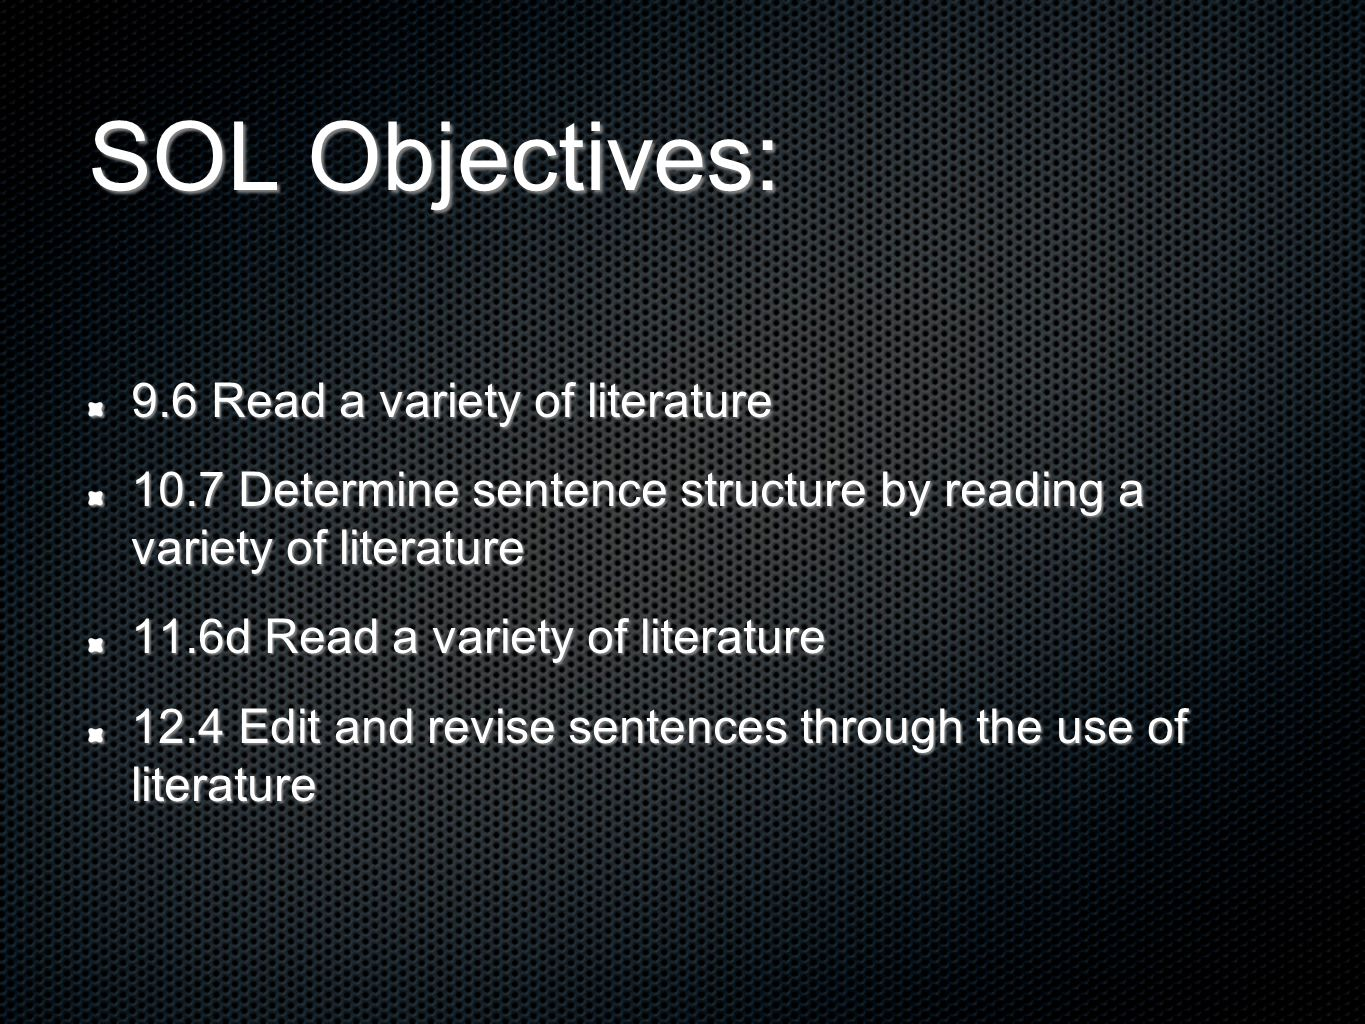 SOL Objectives: 9.6 Read a variety of literature